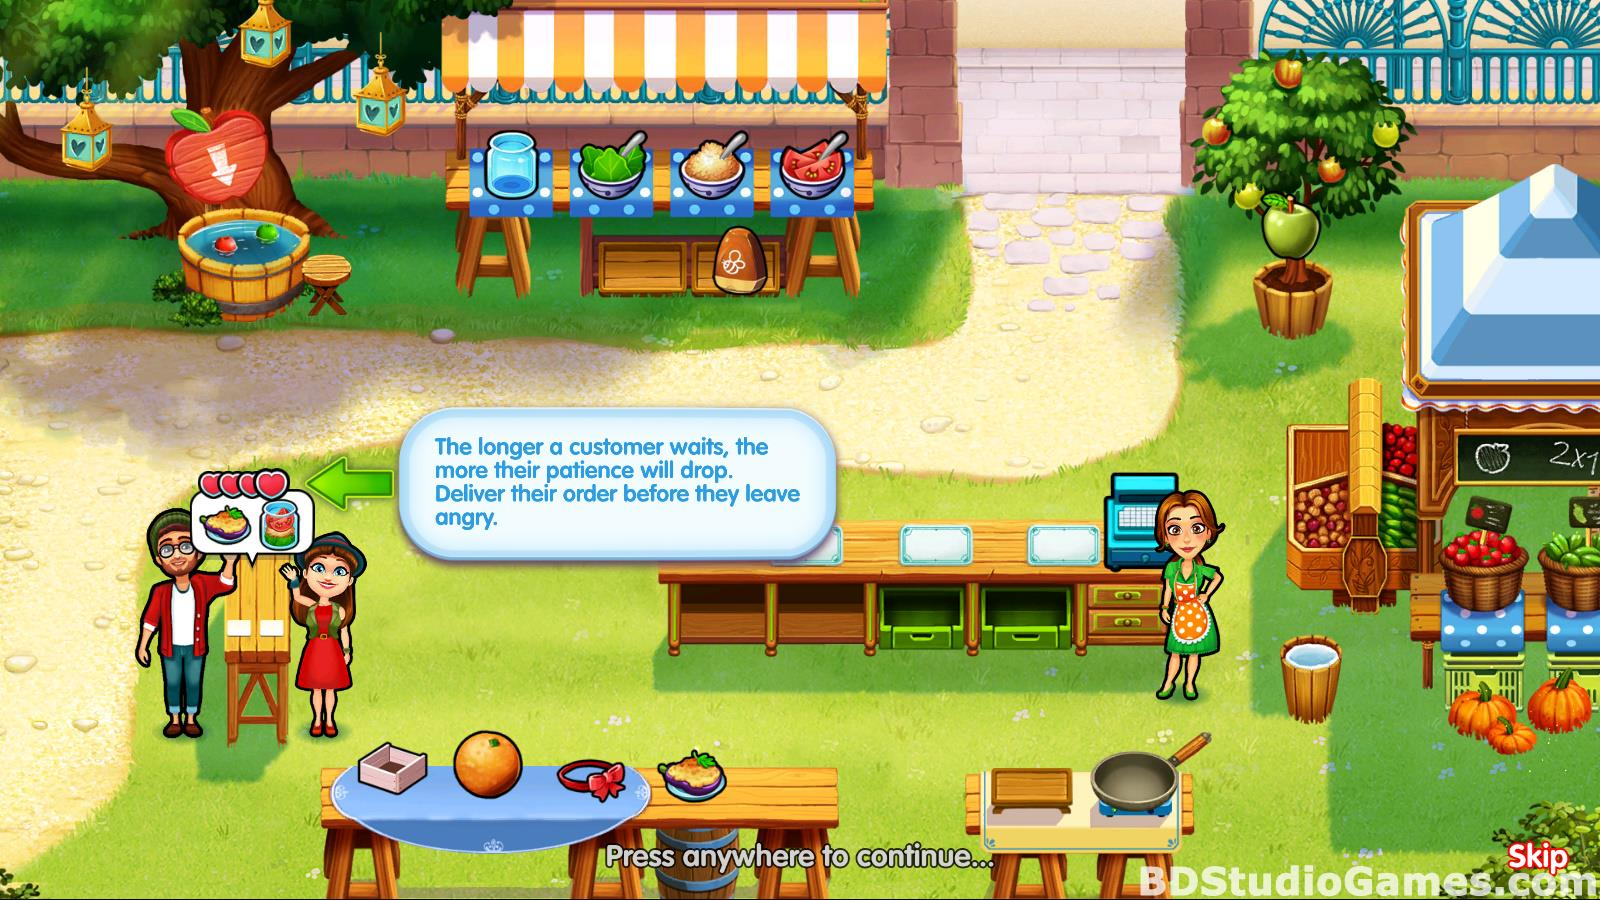 Delicious: Emily's Road Trip Collector's Edition Free Download Screenshots 06